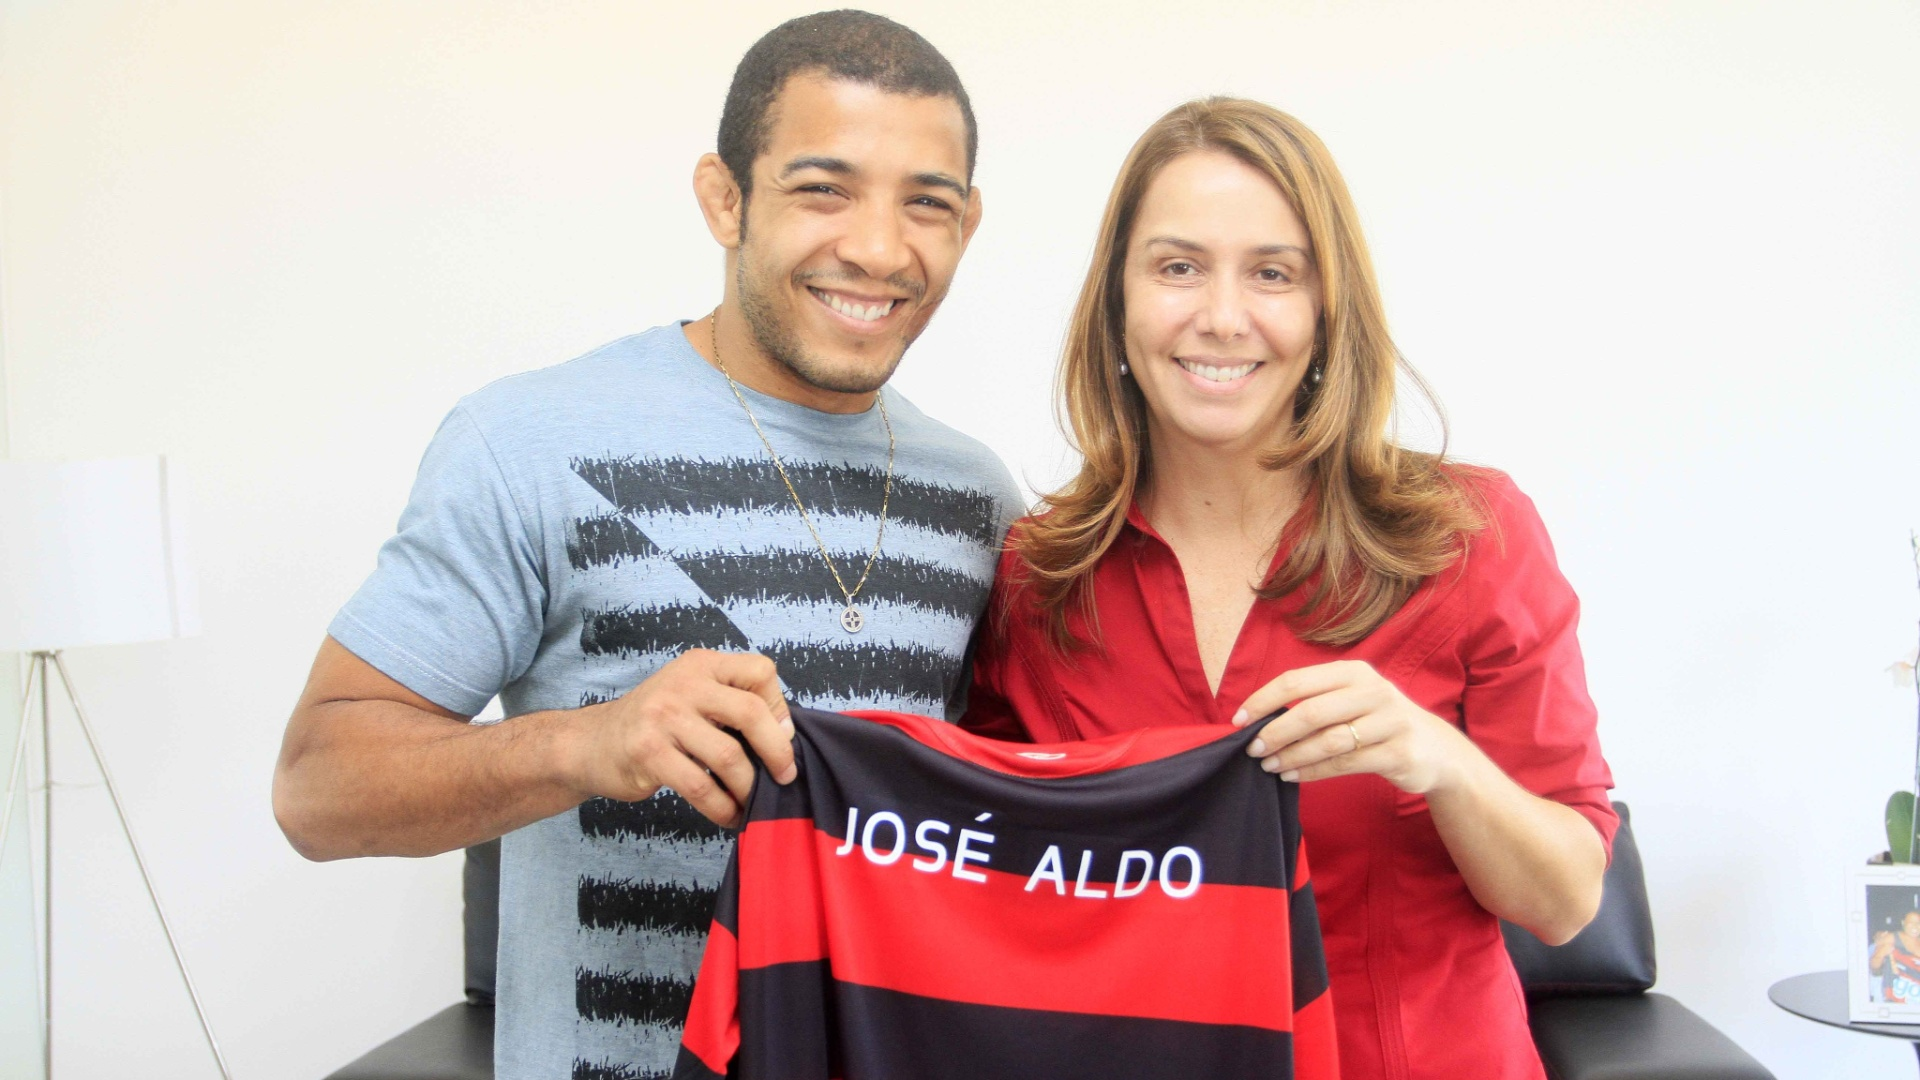 Jos Aldo posa com a camisa do Flamengo e a presidente do clube, Patrcia Amorim